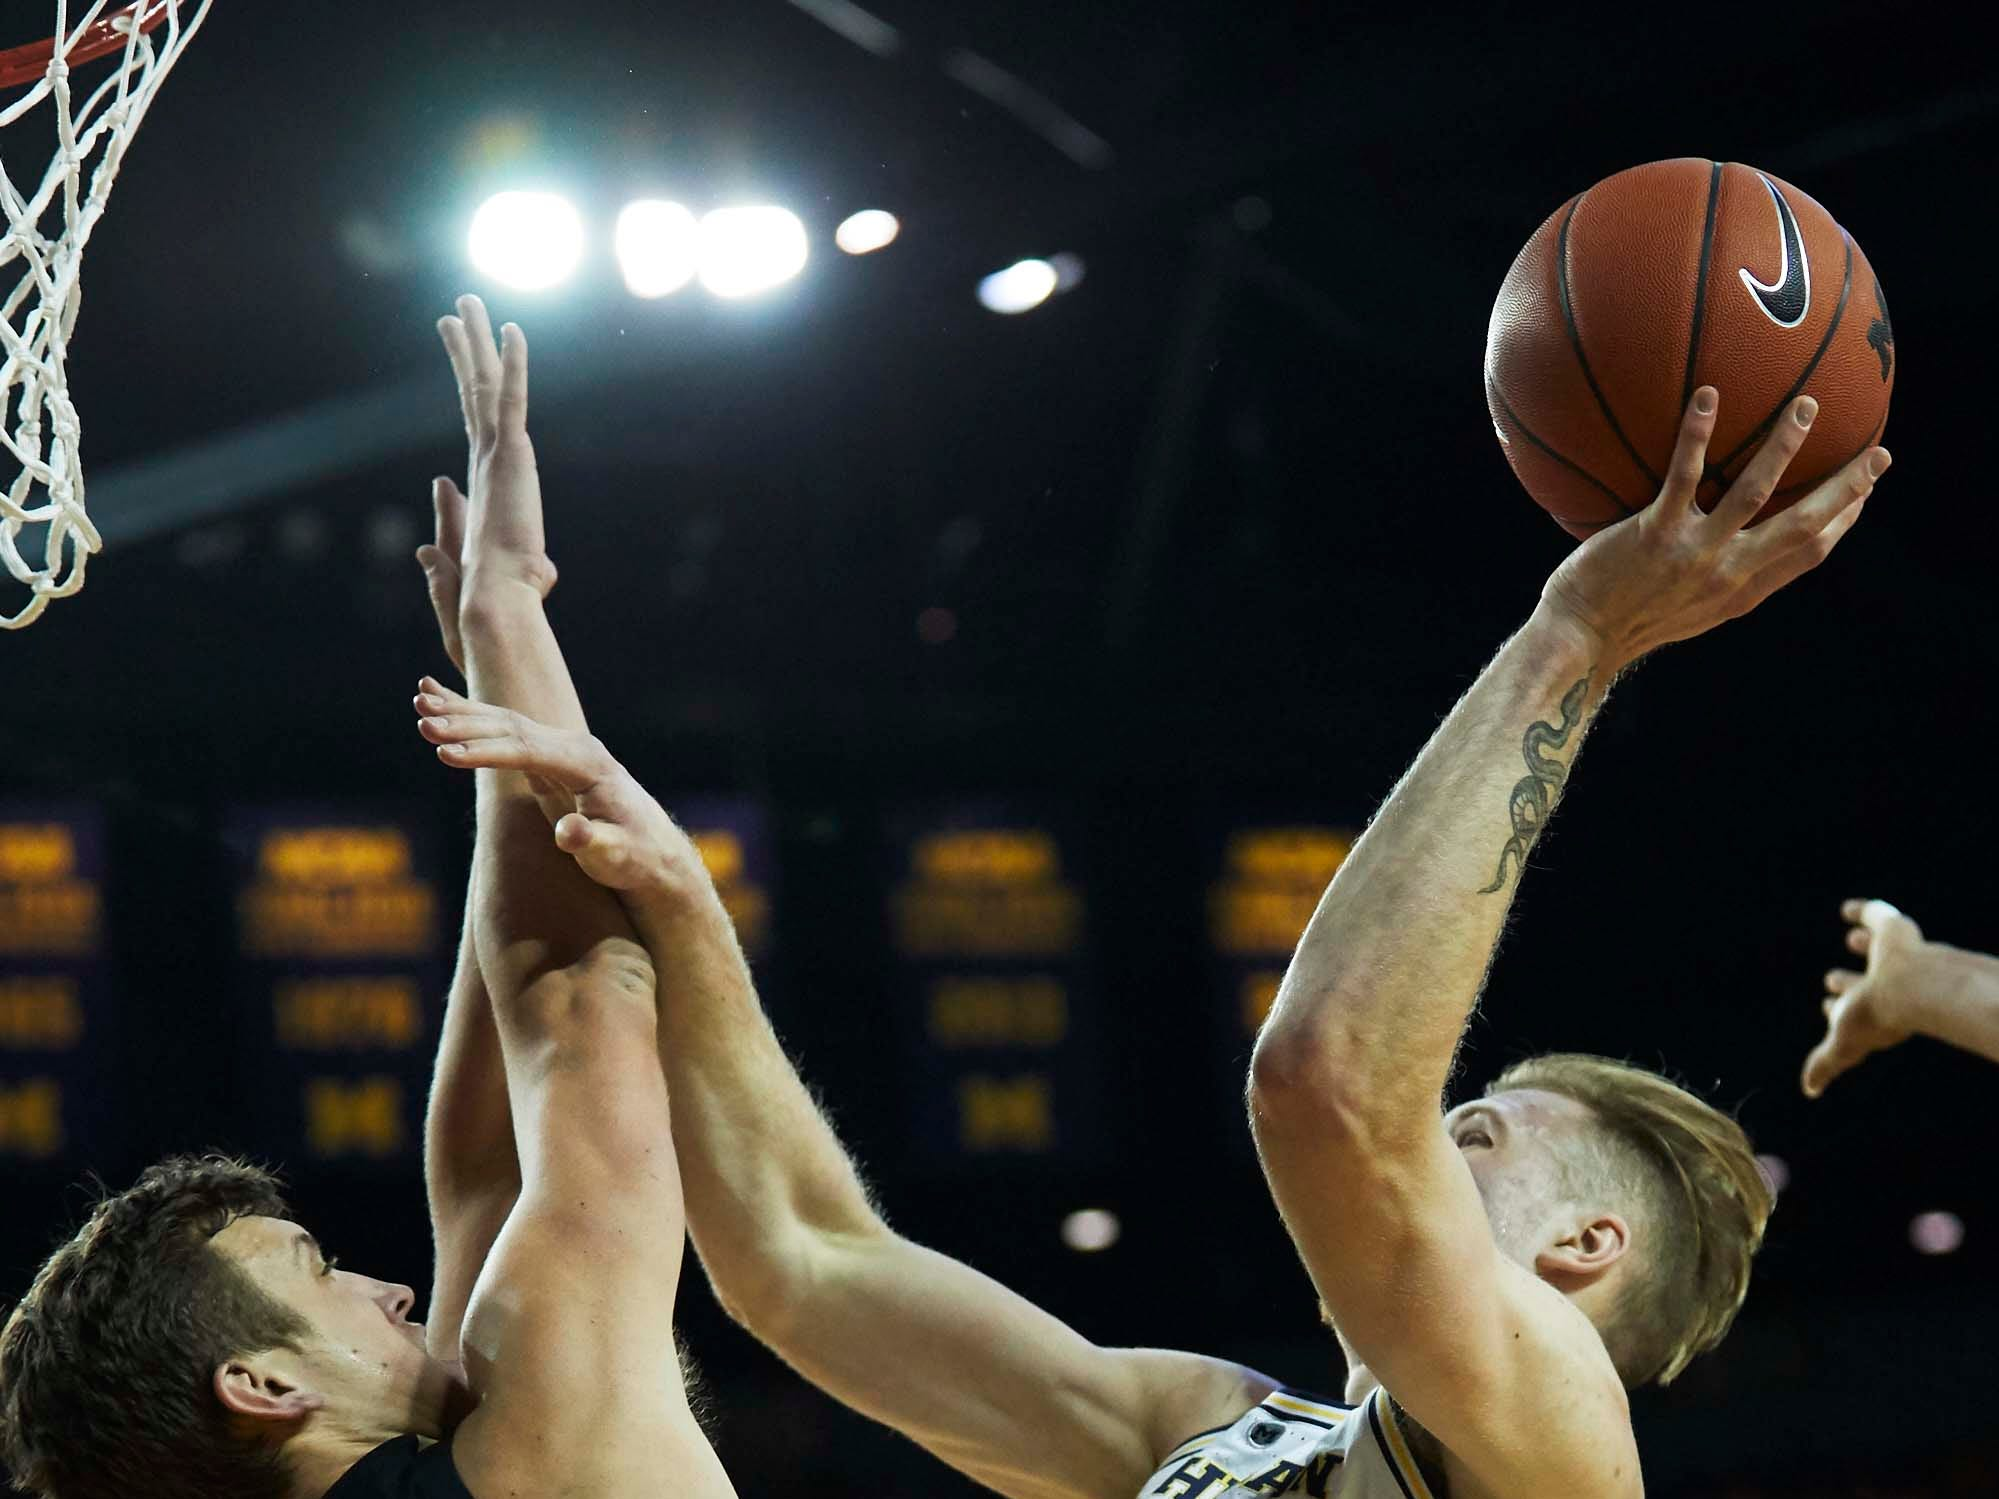 Dec 1, 2018; Ann Arbor, MI, USA; Michigan Wolverines forward Ignas Brazdeikis (13) shoots on Purdue Boilermakers forward Grady Eifert (24) in the first half at Crisler Center. Mandatory Credit: Rick Osentoski-USA TODAY Sports